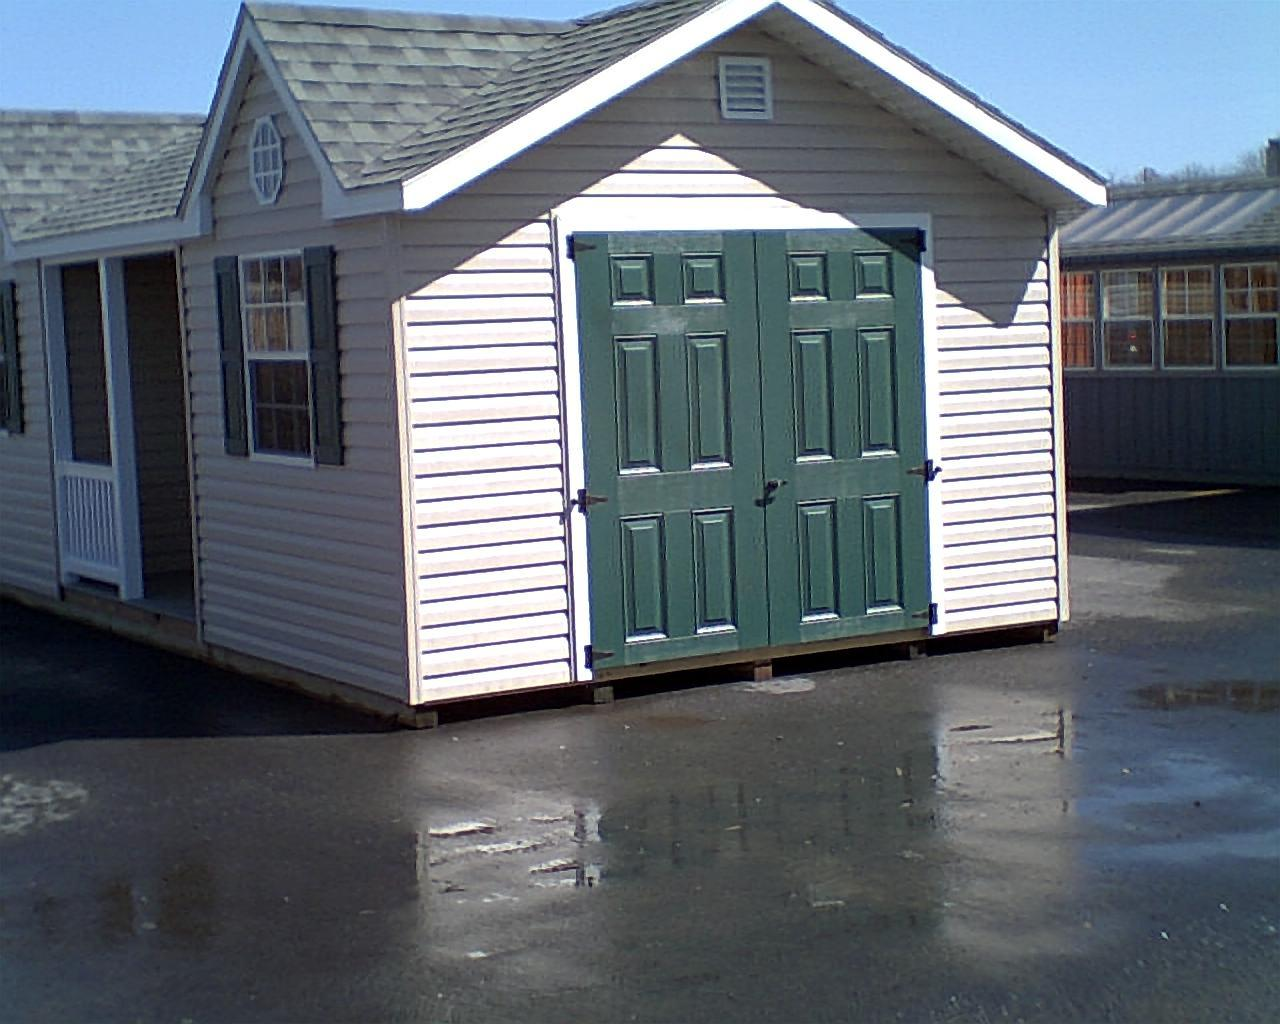 Garden Sheds Albany Ny unique garden sheds albany ny 2 story garages a on design decorating